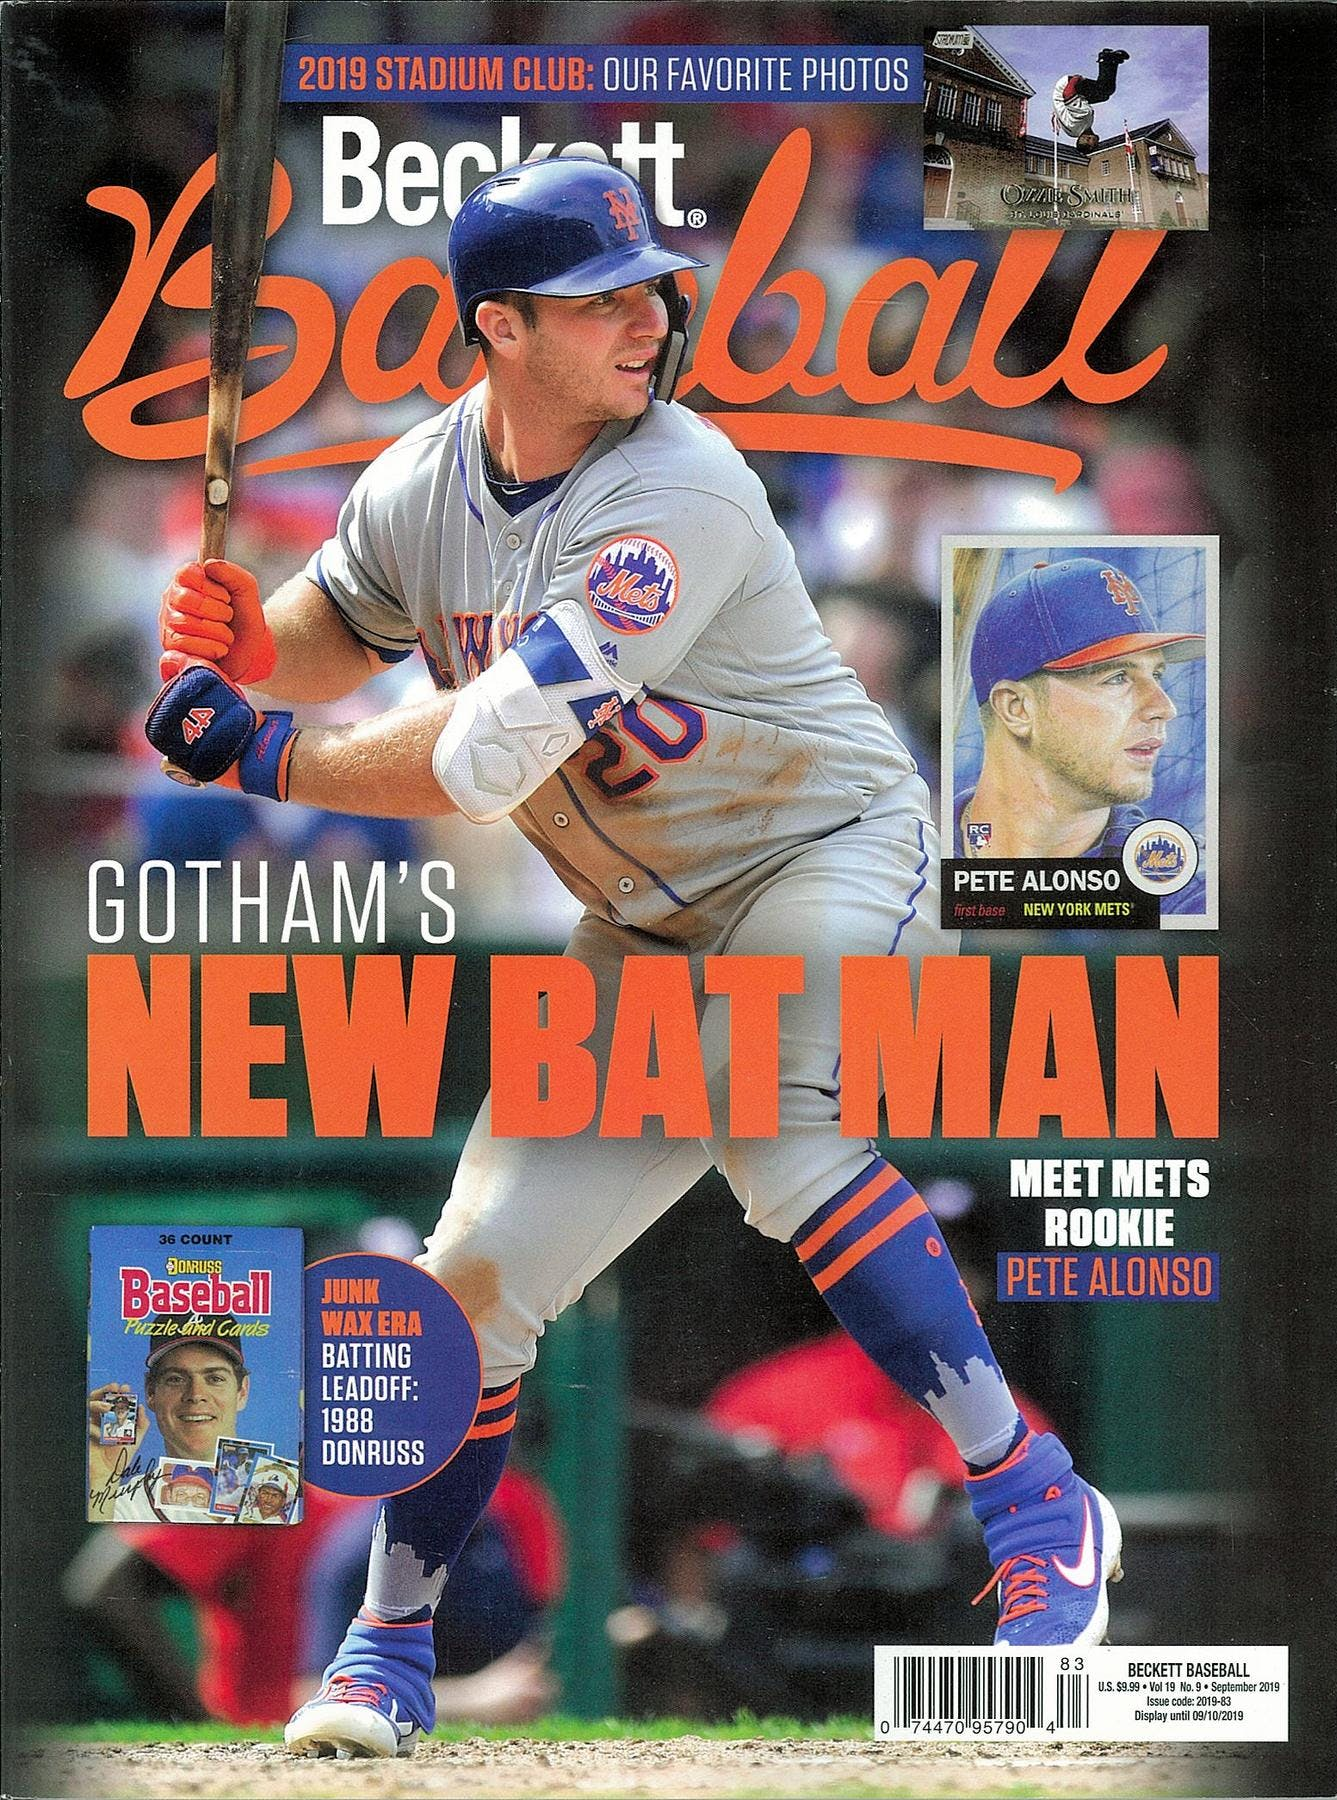 2019 Beckett Baseball Monthly Price Guide (#162 September) (Pete Alonso)